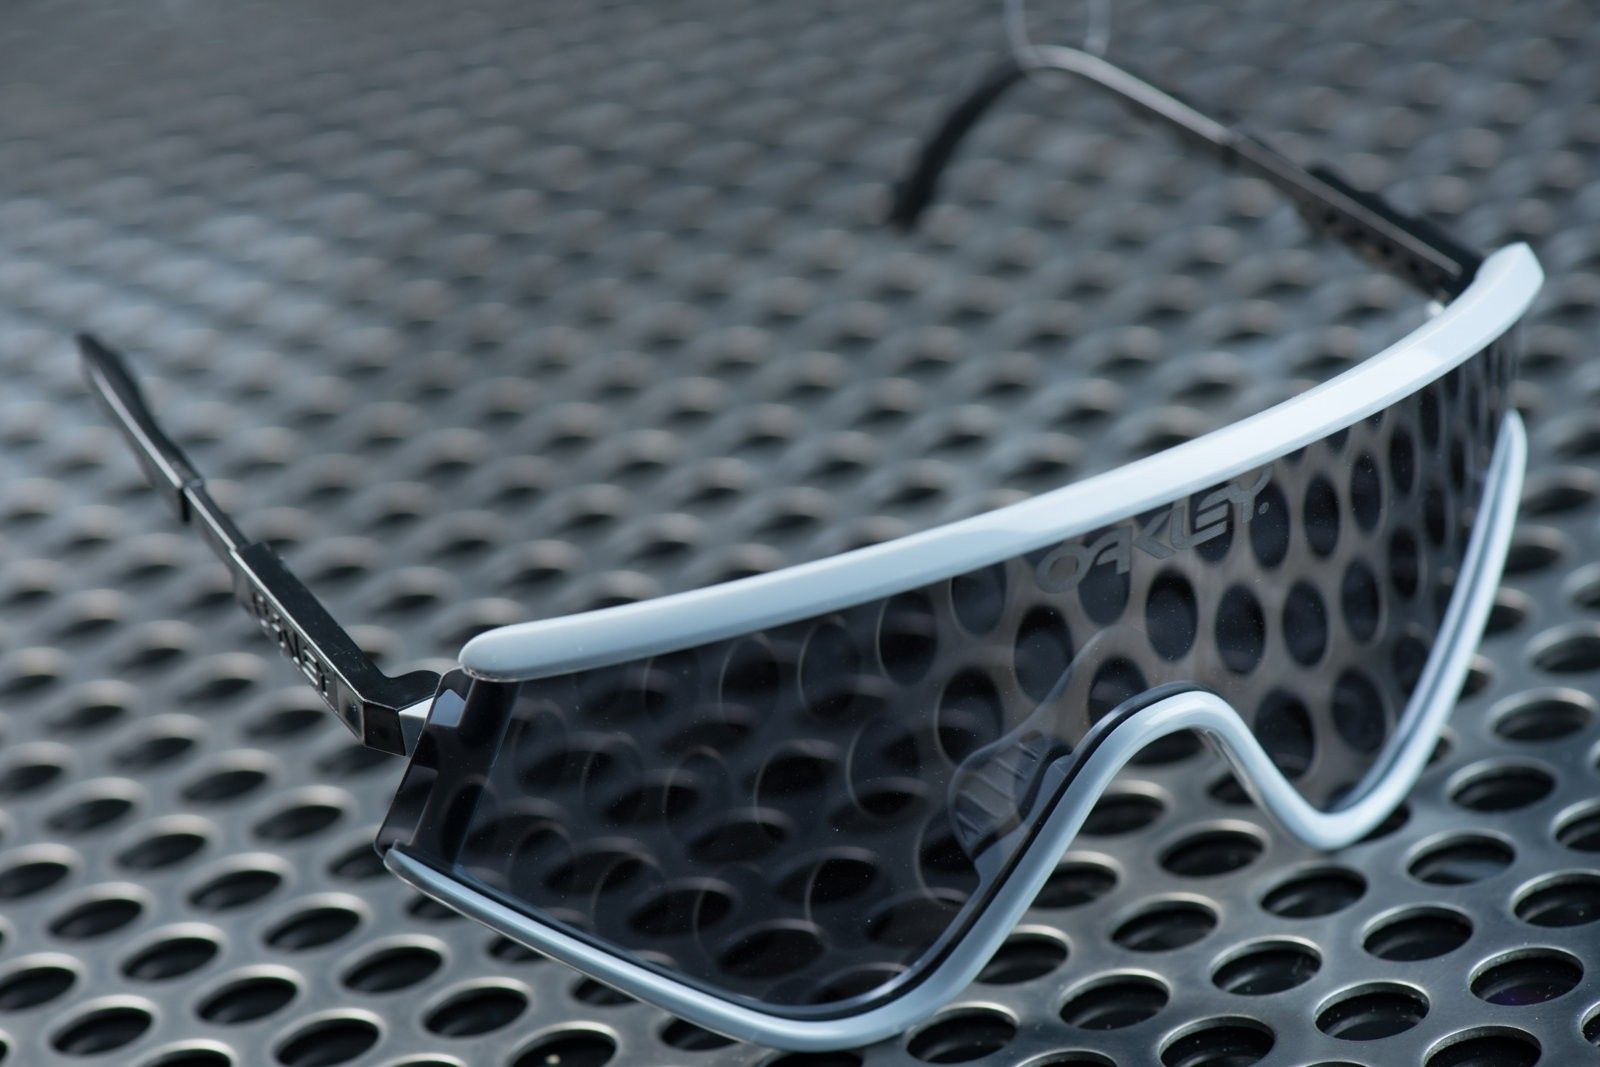 3 of 3 Signed Oakley Heritage Eyeshades by Jim Jannard - Fog with Grey - Untitled Session00396.jpg